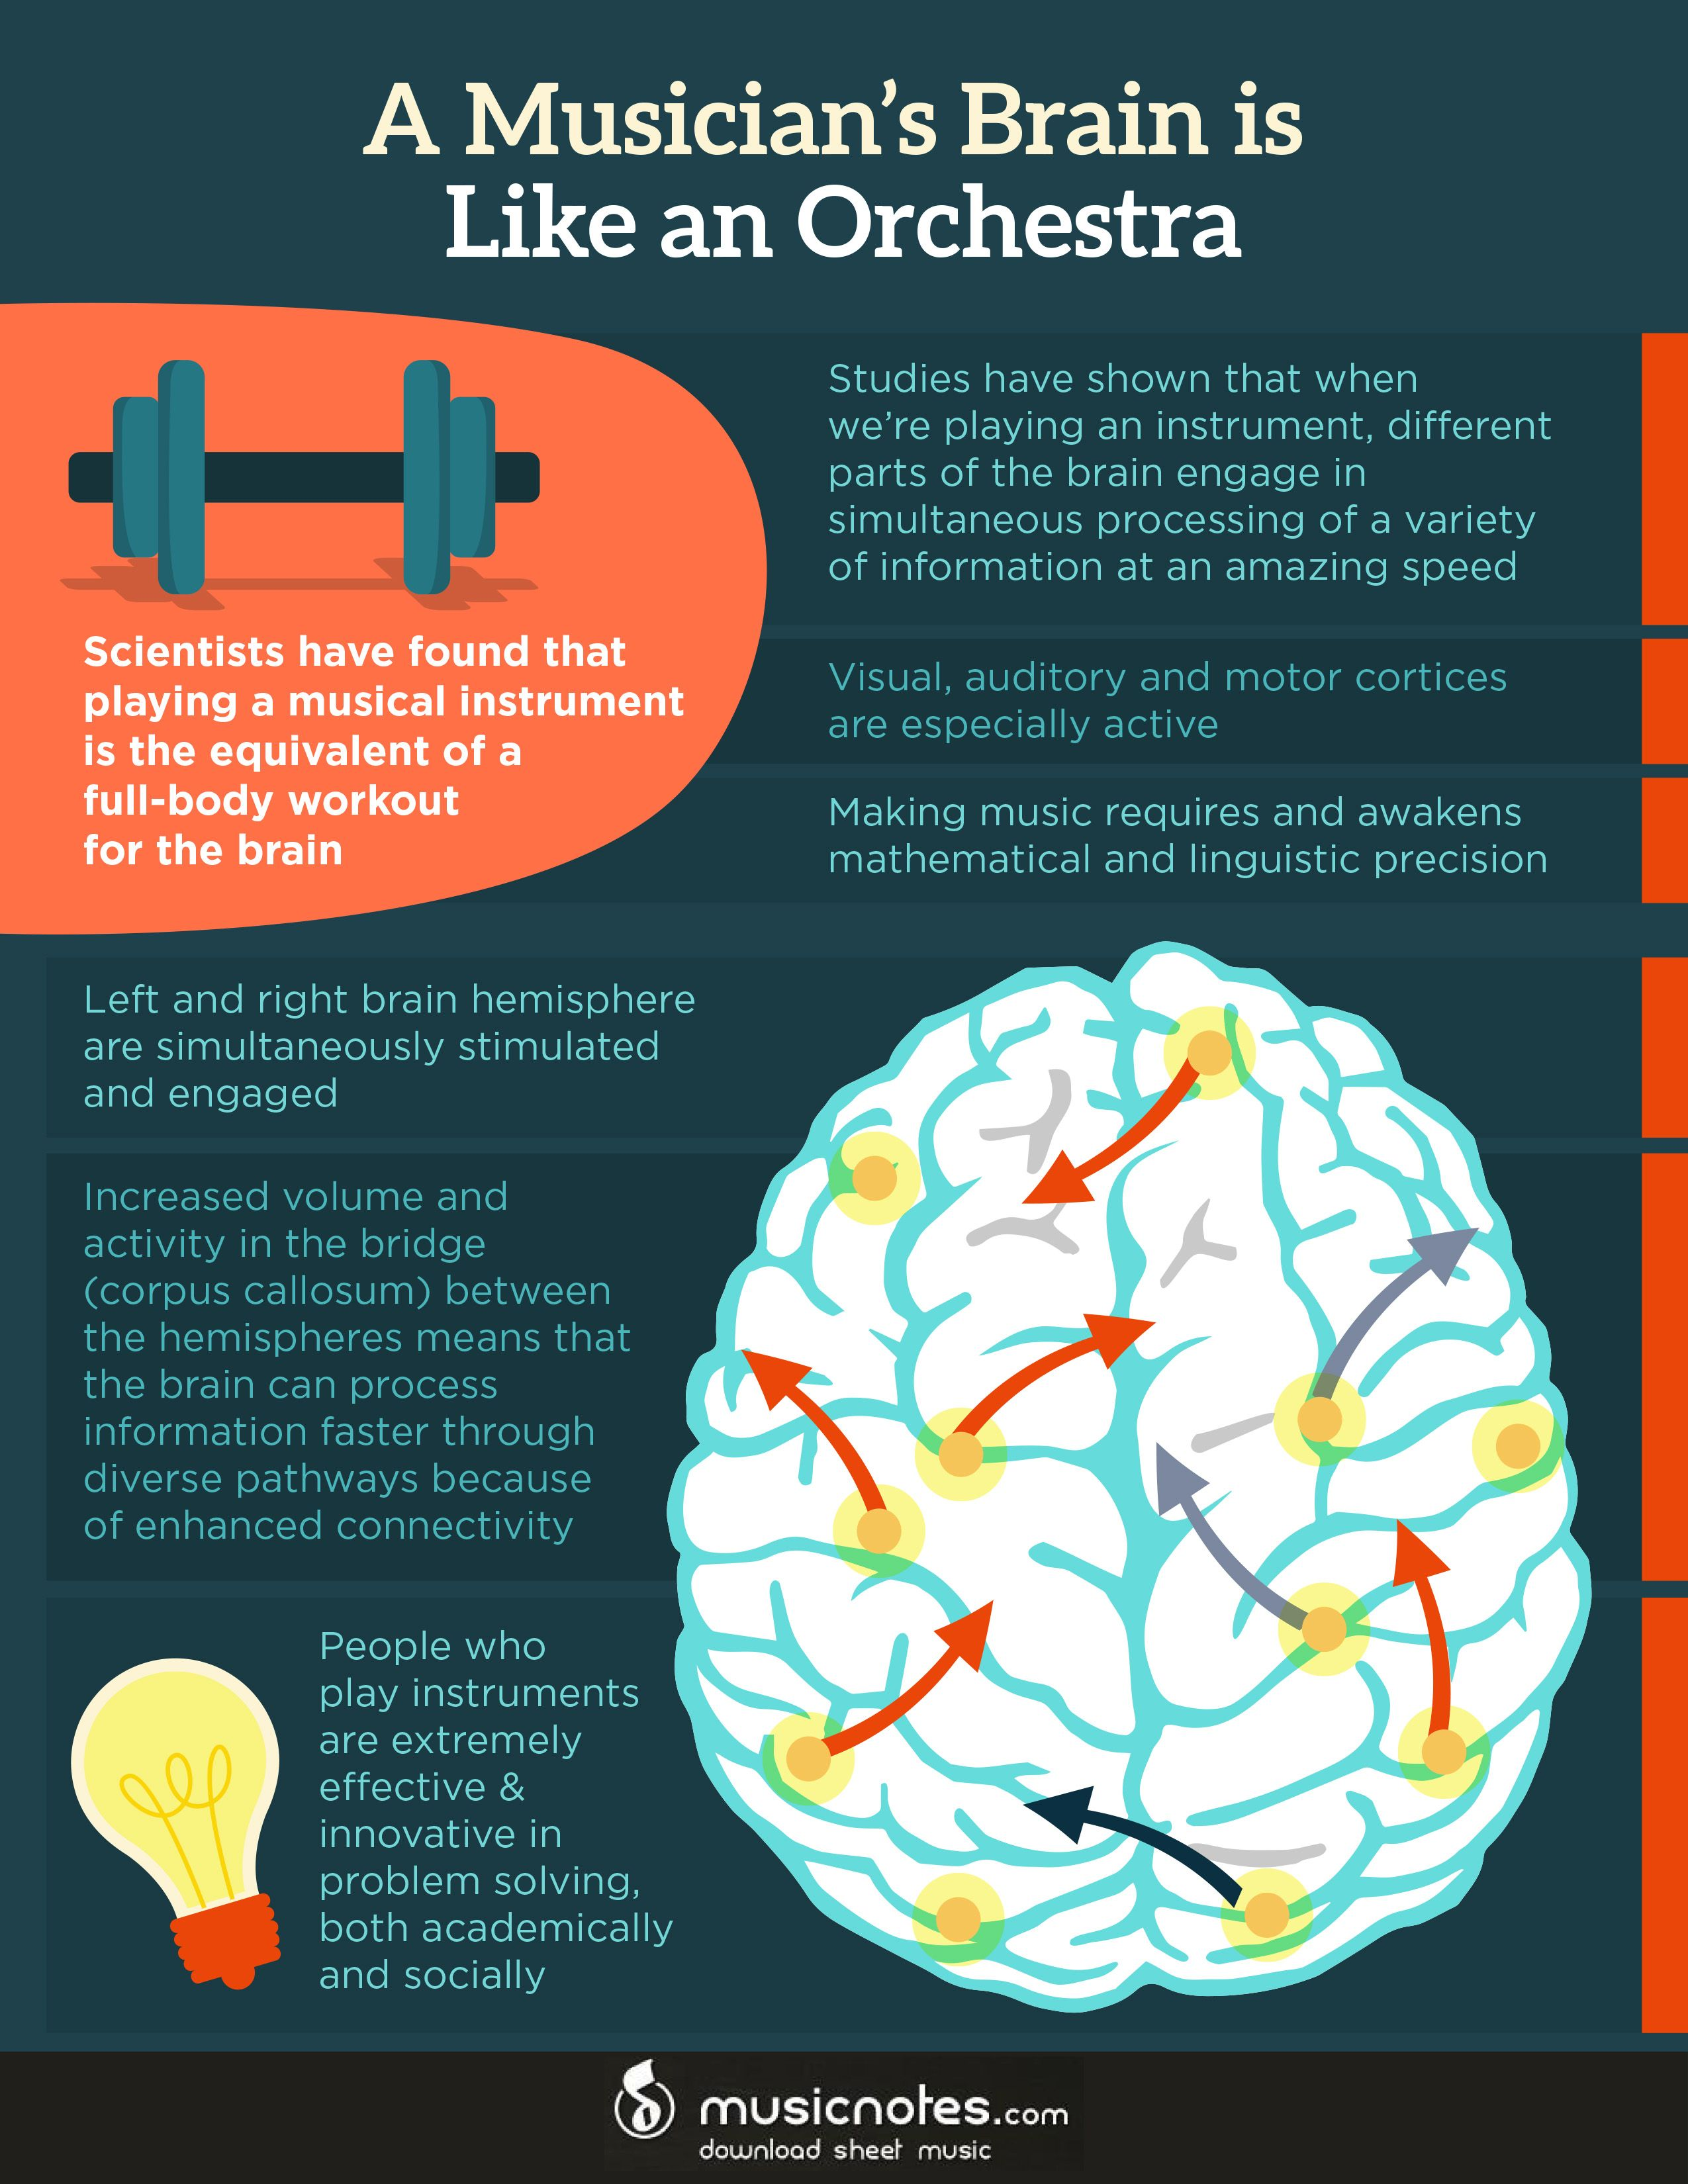 8 Surprising Ways Music Affects and Benefits Our Brains